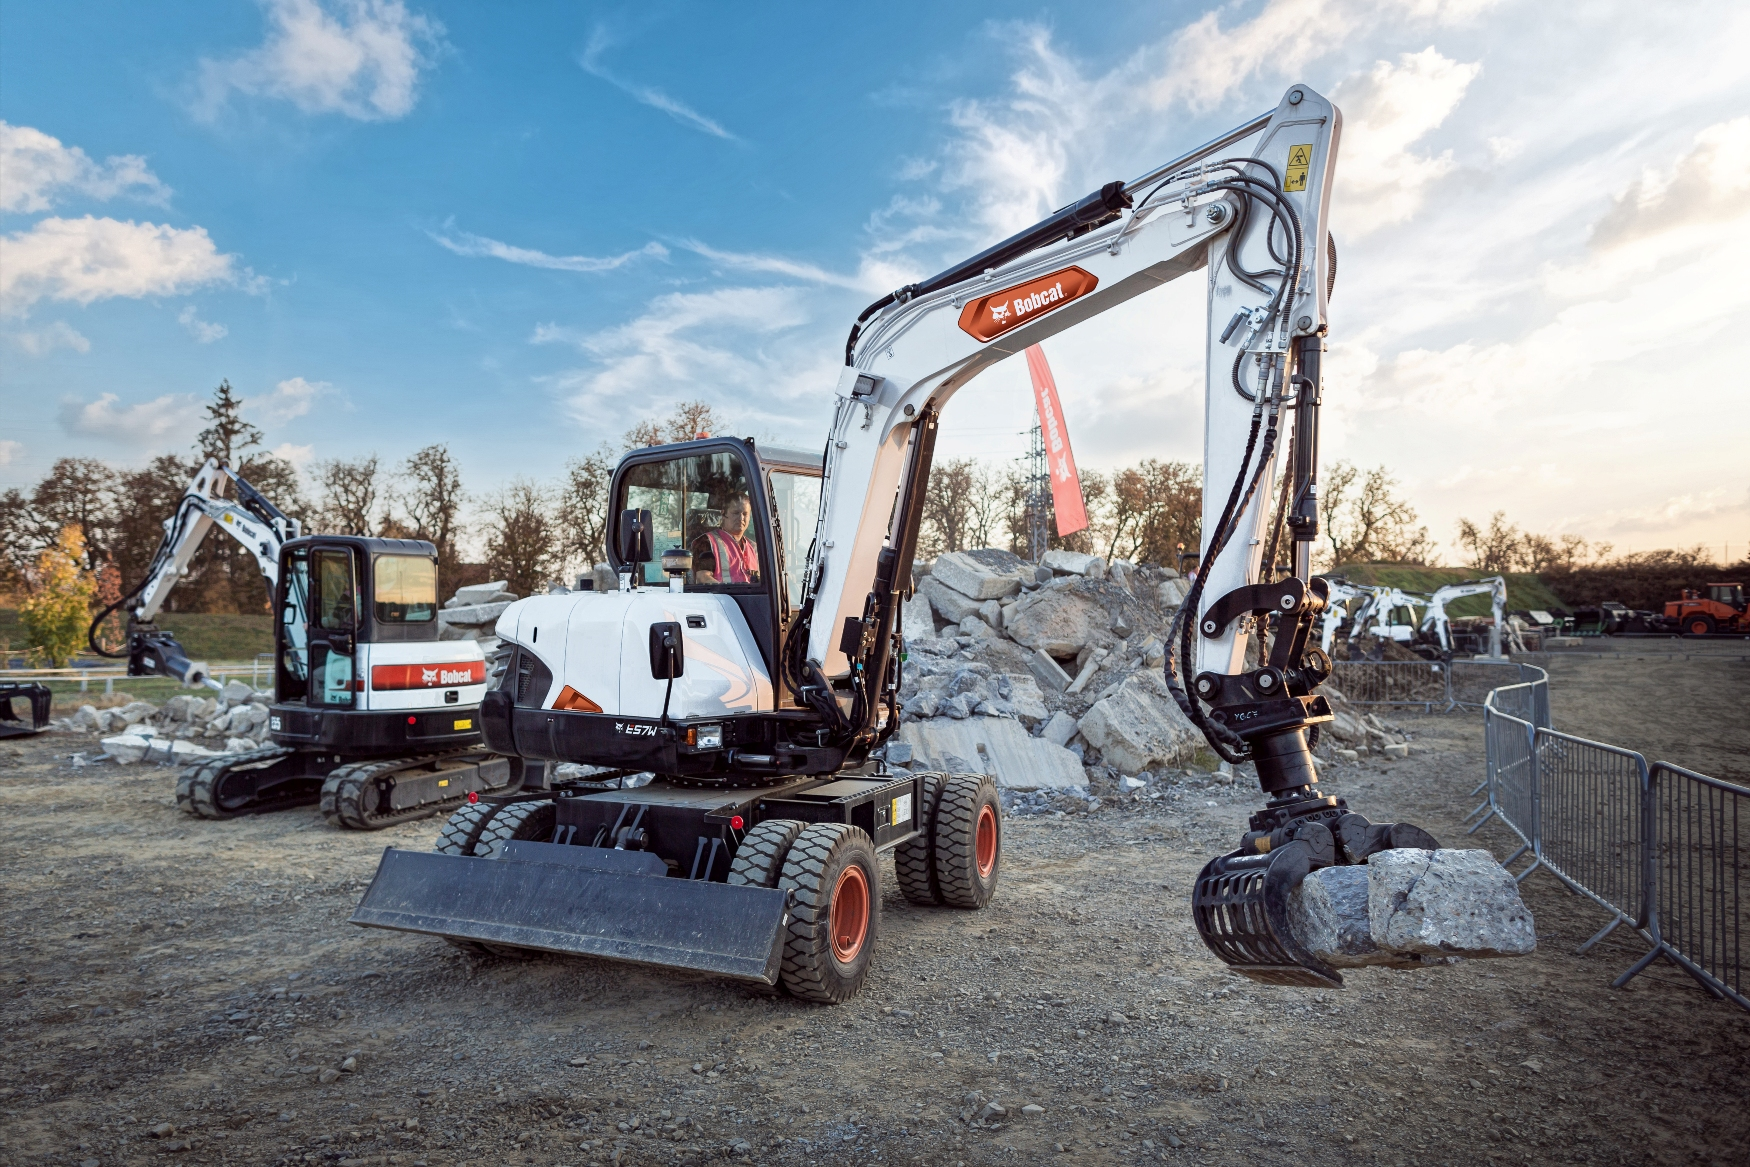 New 6 tonne Wheeled Excavator from Bobcat  Powered by Fuel Efficient Stage V Engine